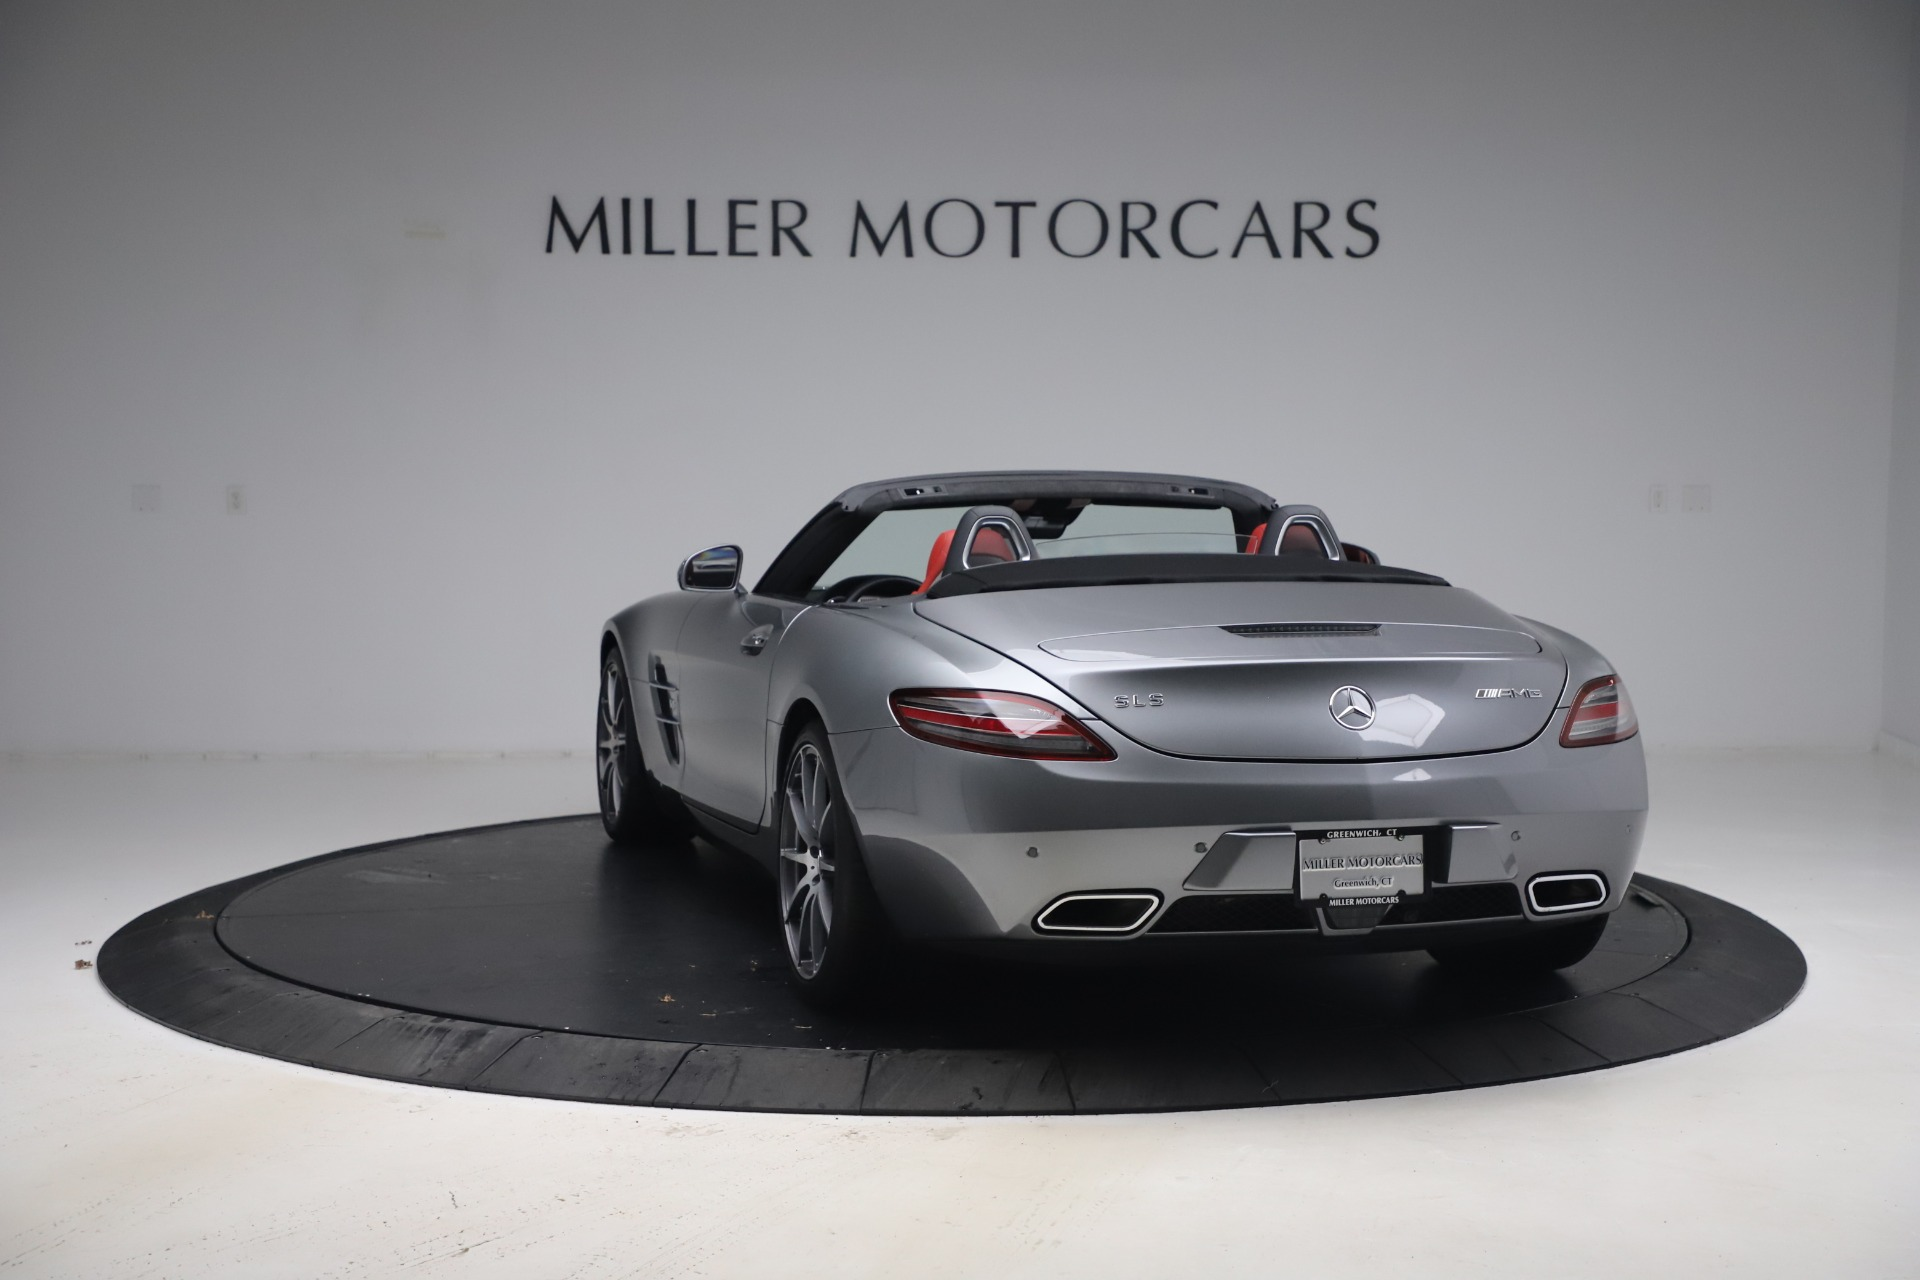 Used 2012 Mercedes-Benz SLS AMG  For Sale In Westport, CT 3189_p7